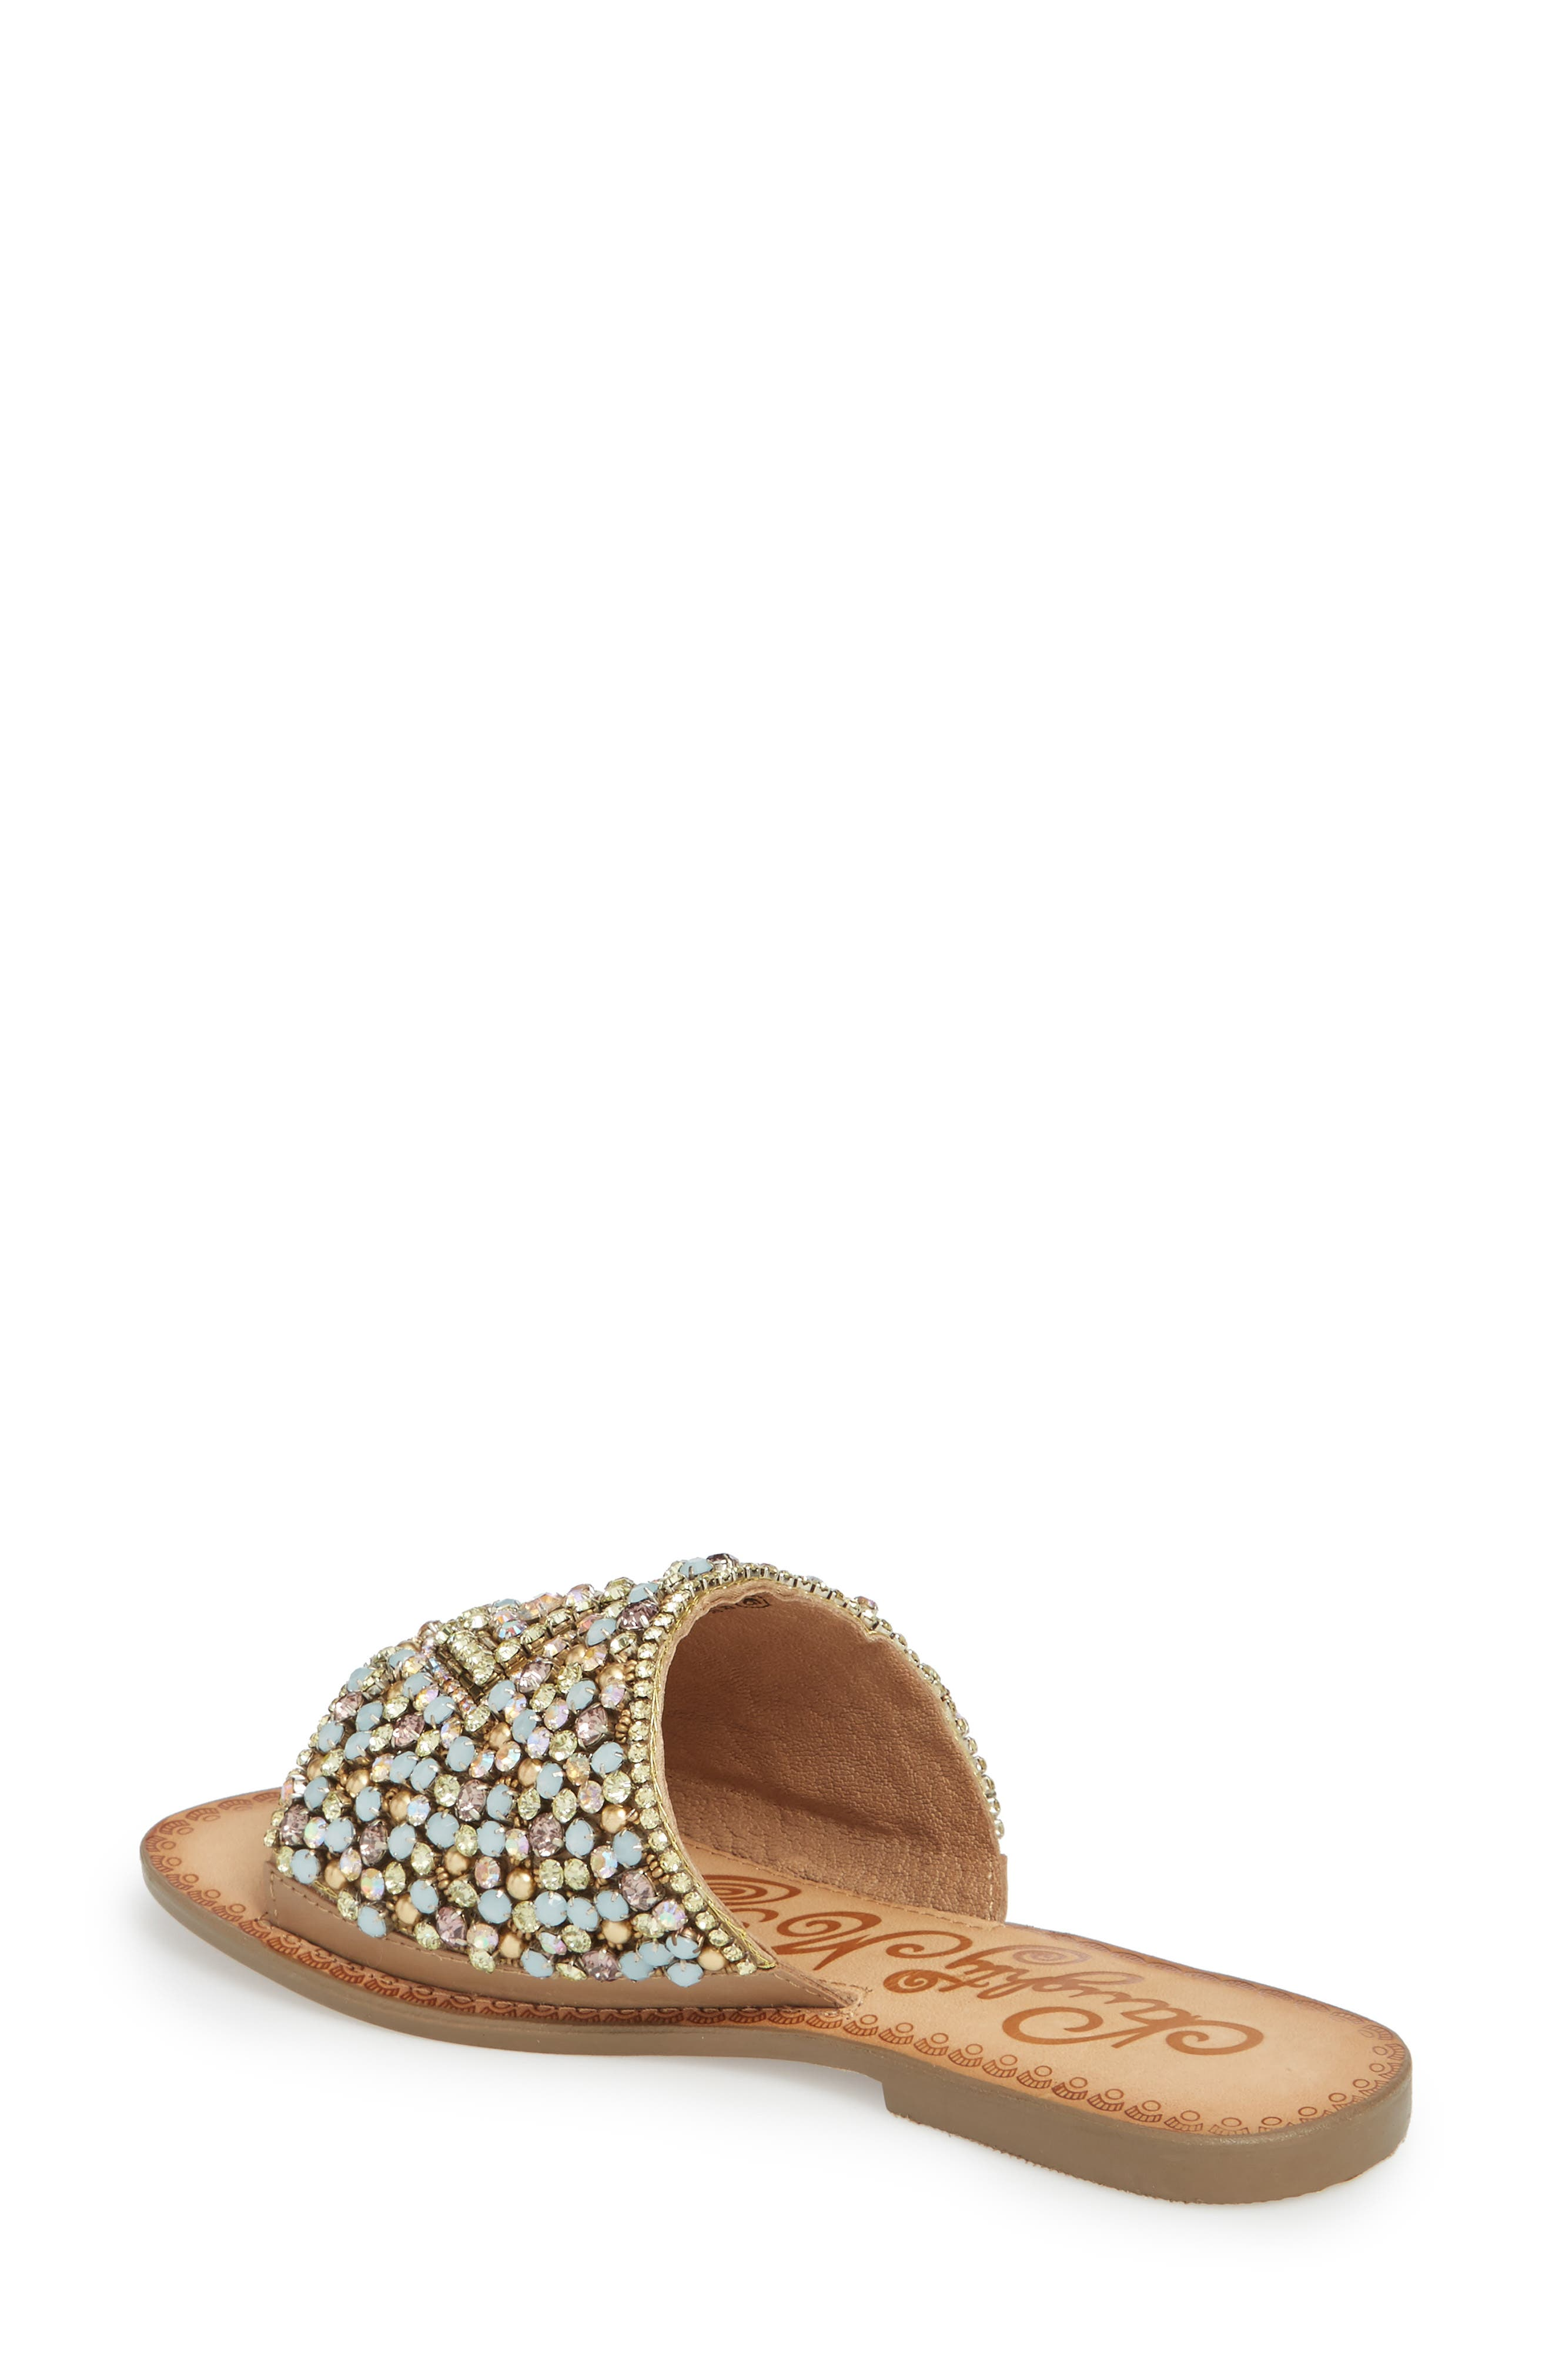 Susanna Embellished Slide Sandal,                             Alternate thumbnail 2, color,                             040